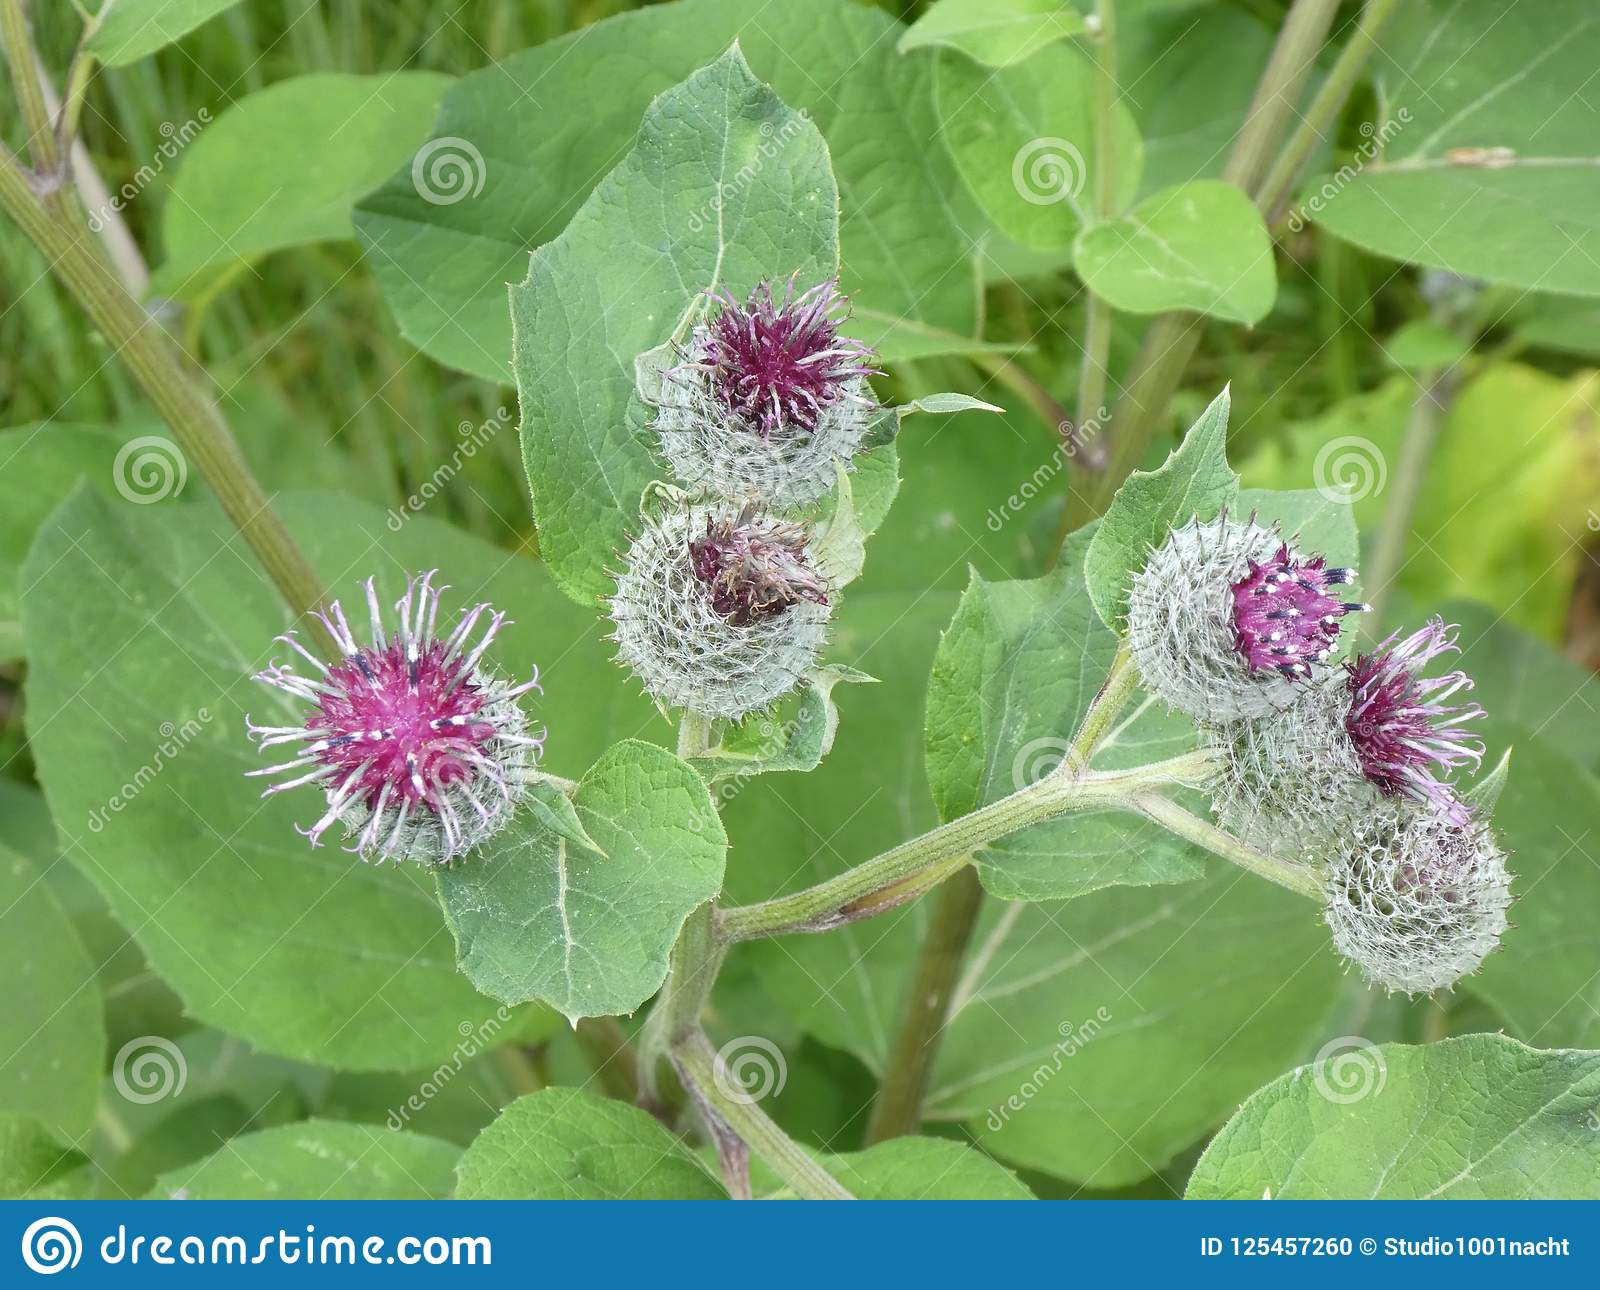 Cocklebur Flower With Big Leaves And Purple Blossom In The